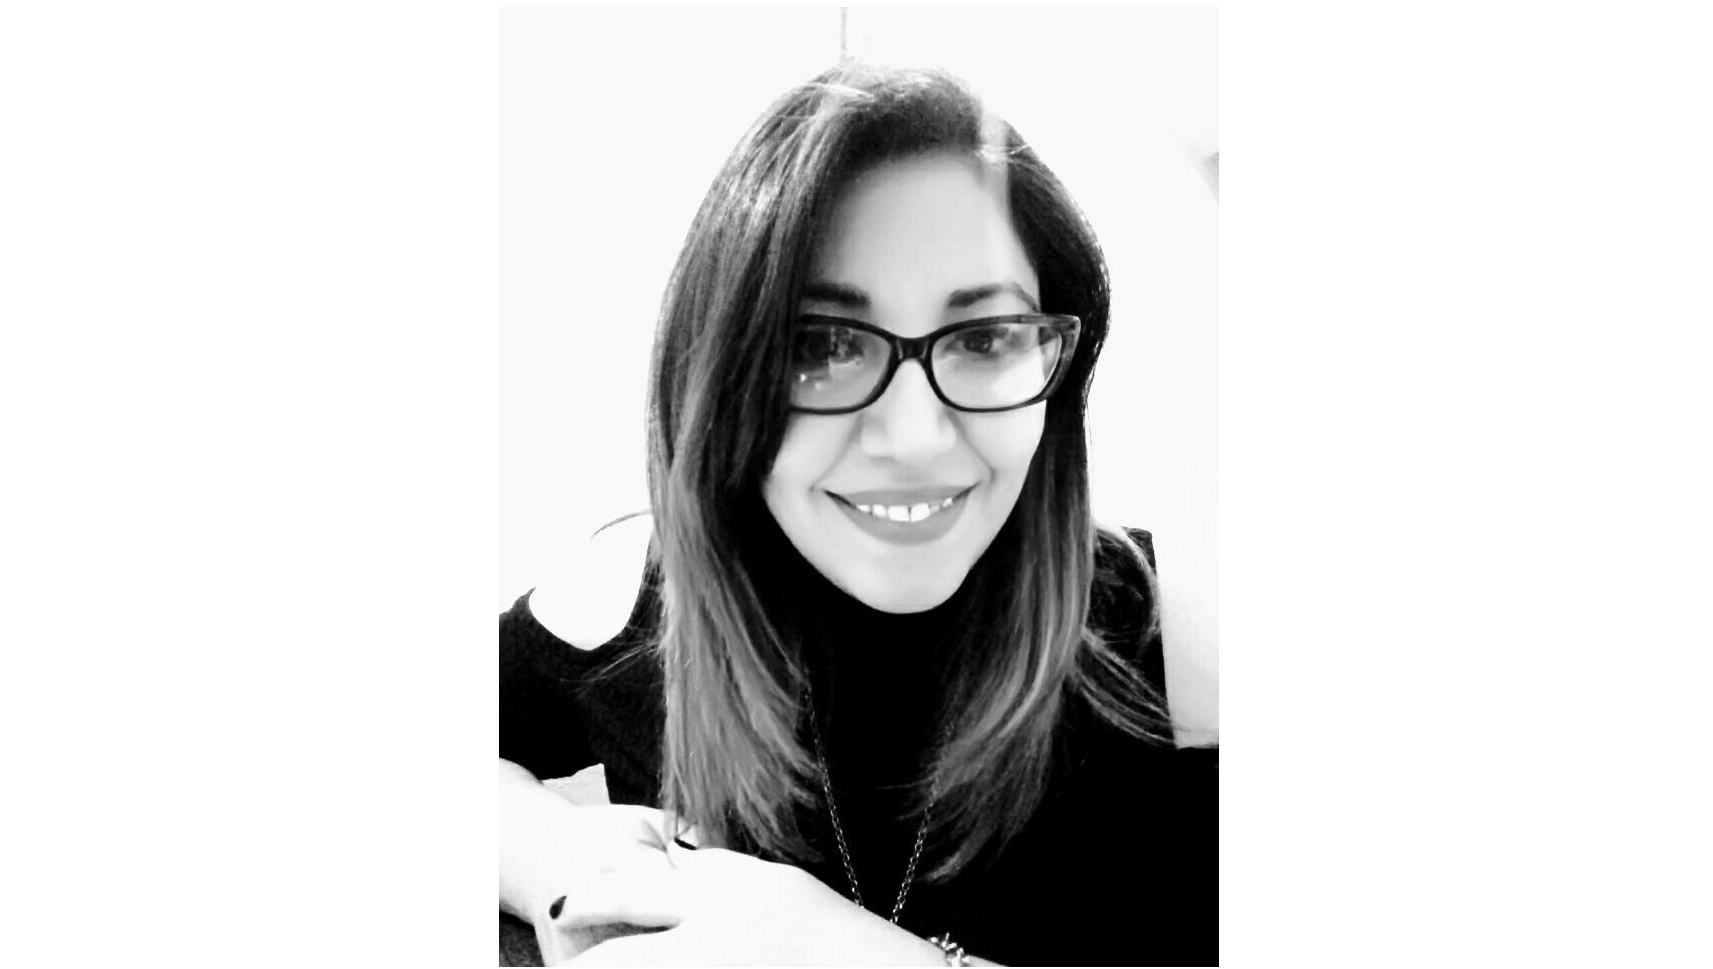 Interview with Gabriela Jara, IEN member from Argentina and IOTA Hispano writer